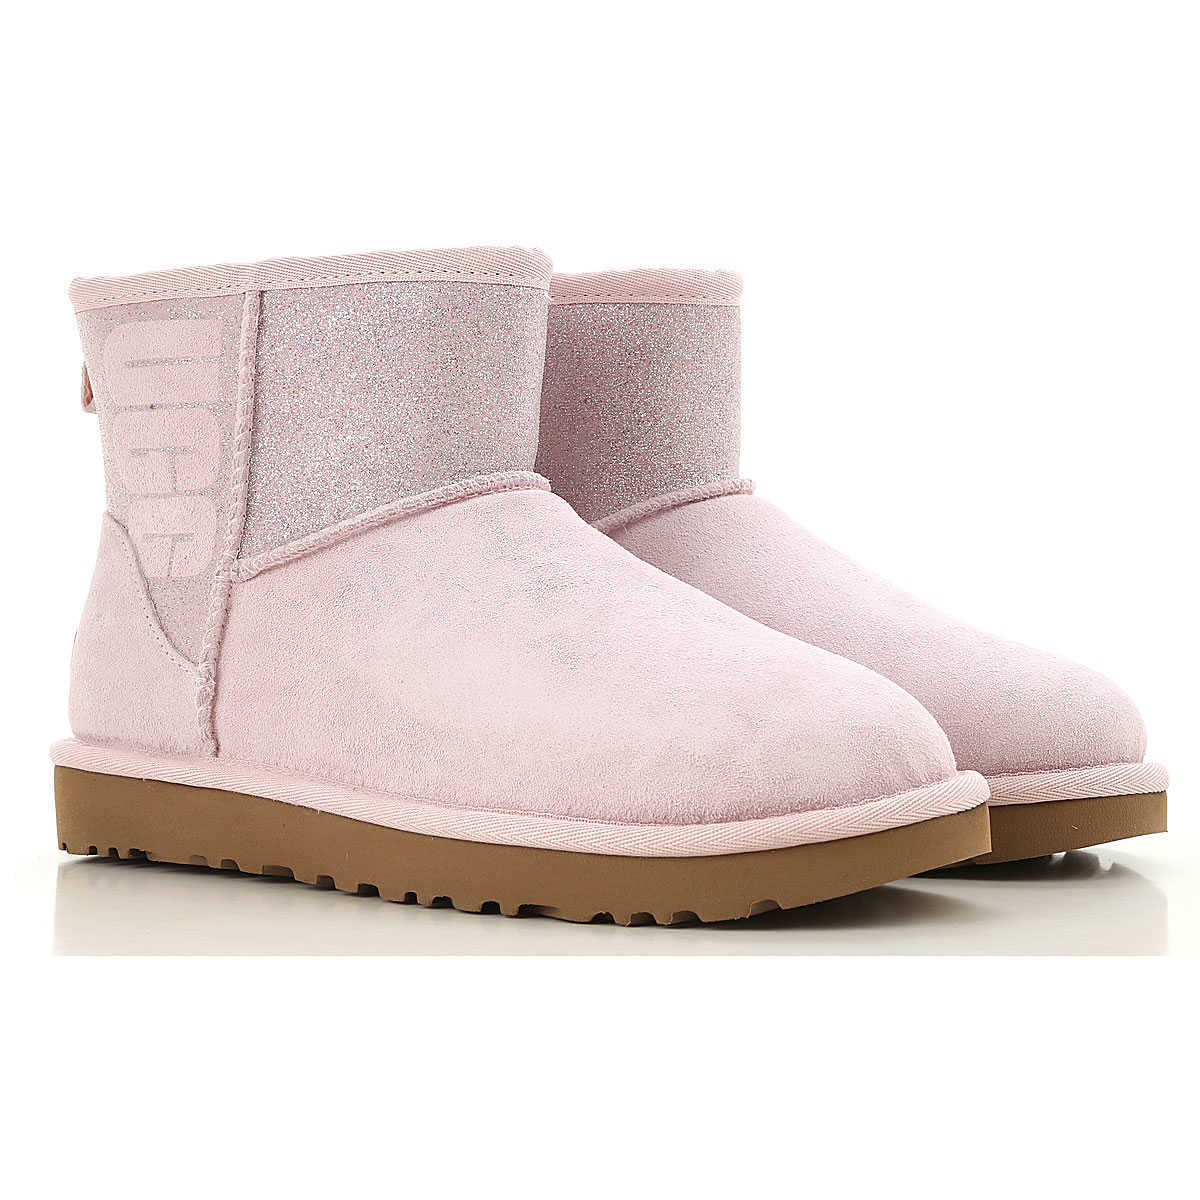 UGG Boots for Women USA 8  UK 6 5  EU 39  JAPAN 250 USA 6  UK 4 5  EU 37  JAPAN 230 USA 5  UK 3 5  EU 36  JAPAN 2 Booties UK - GOOFASH